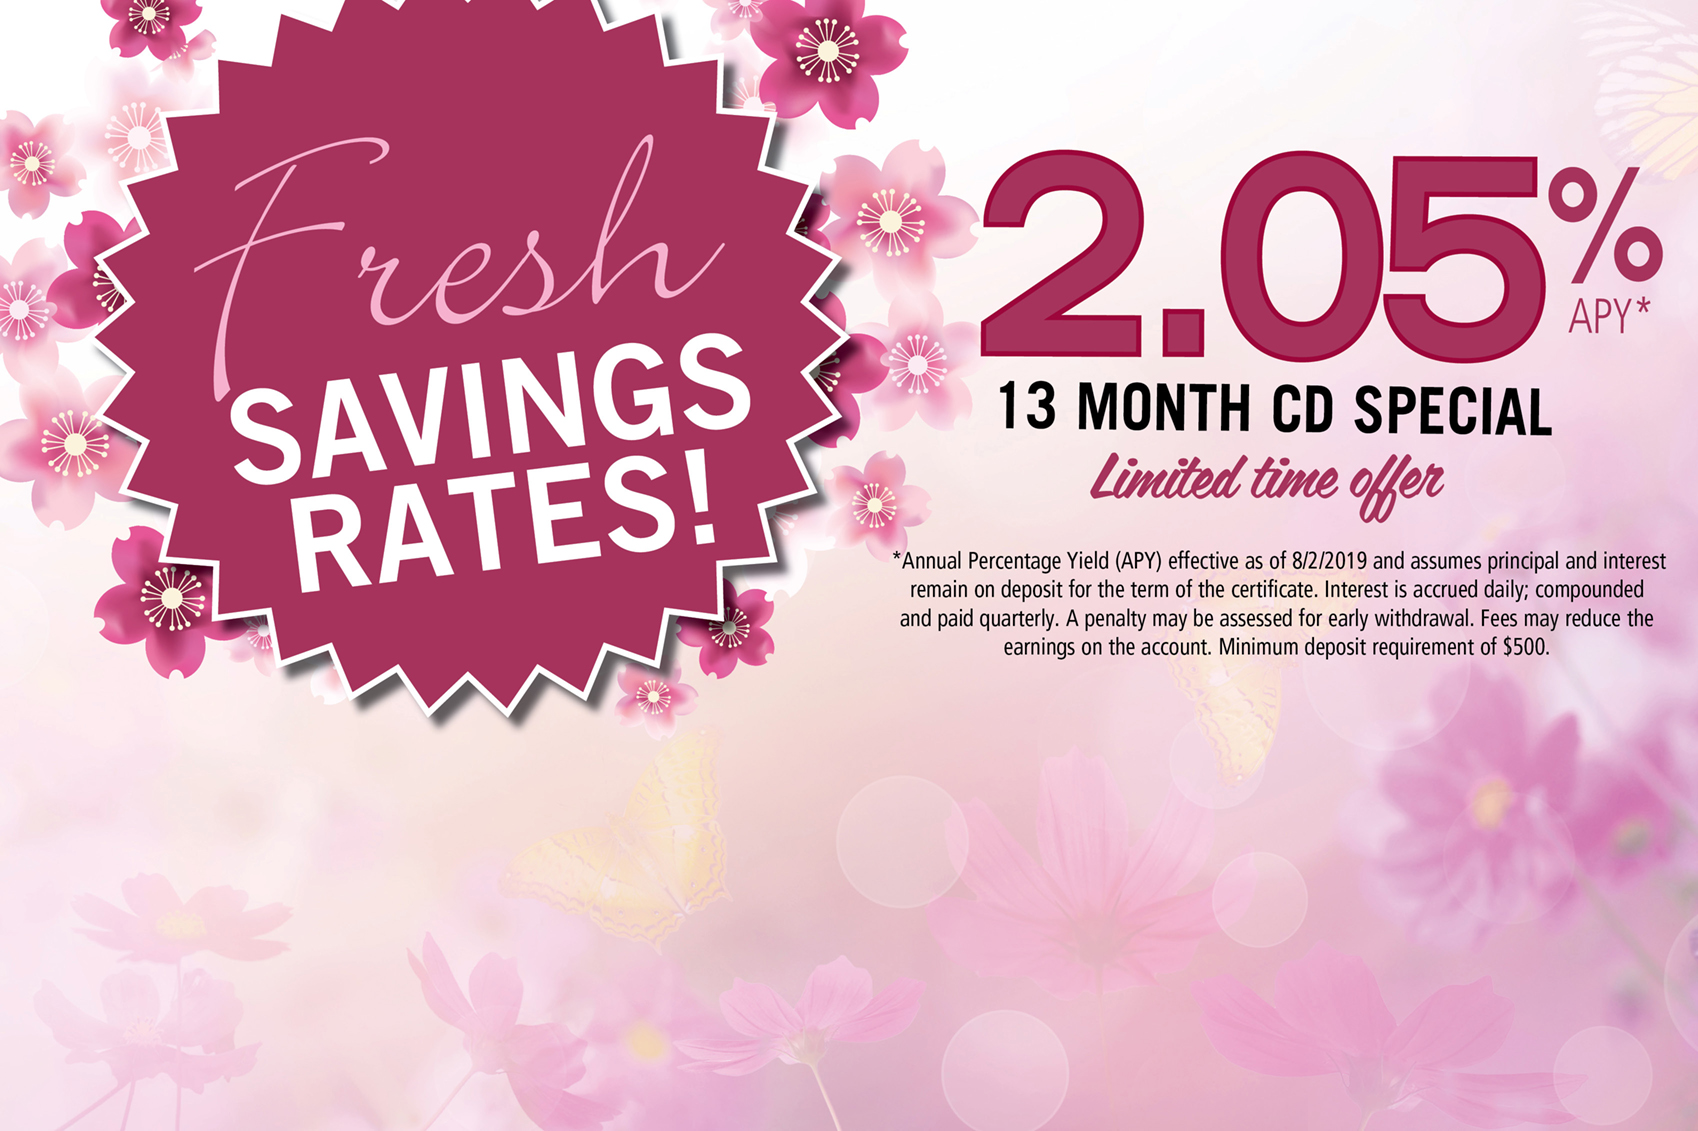 Fresh Savings Rate-13 month CD Special